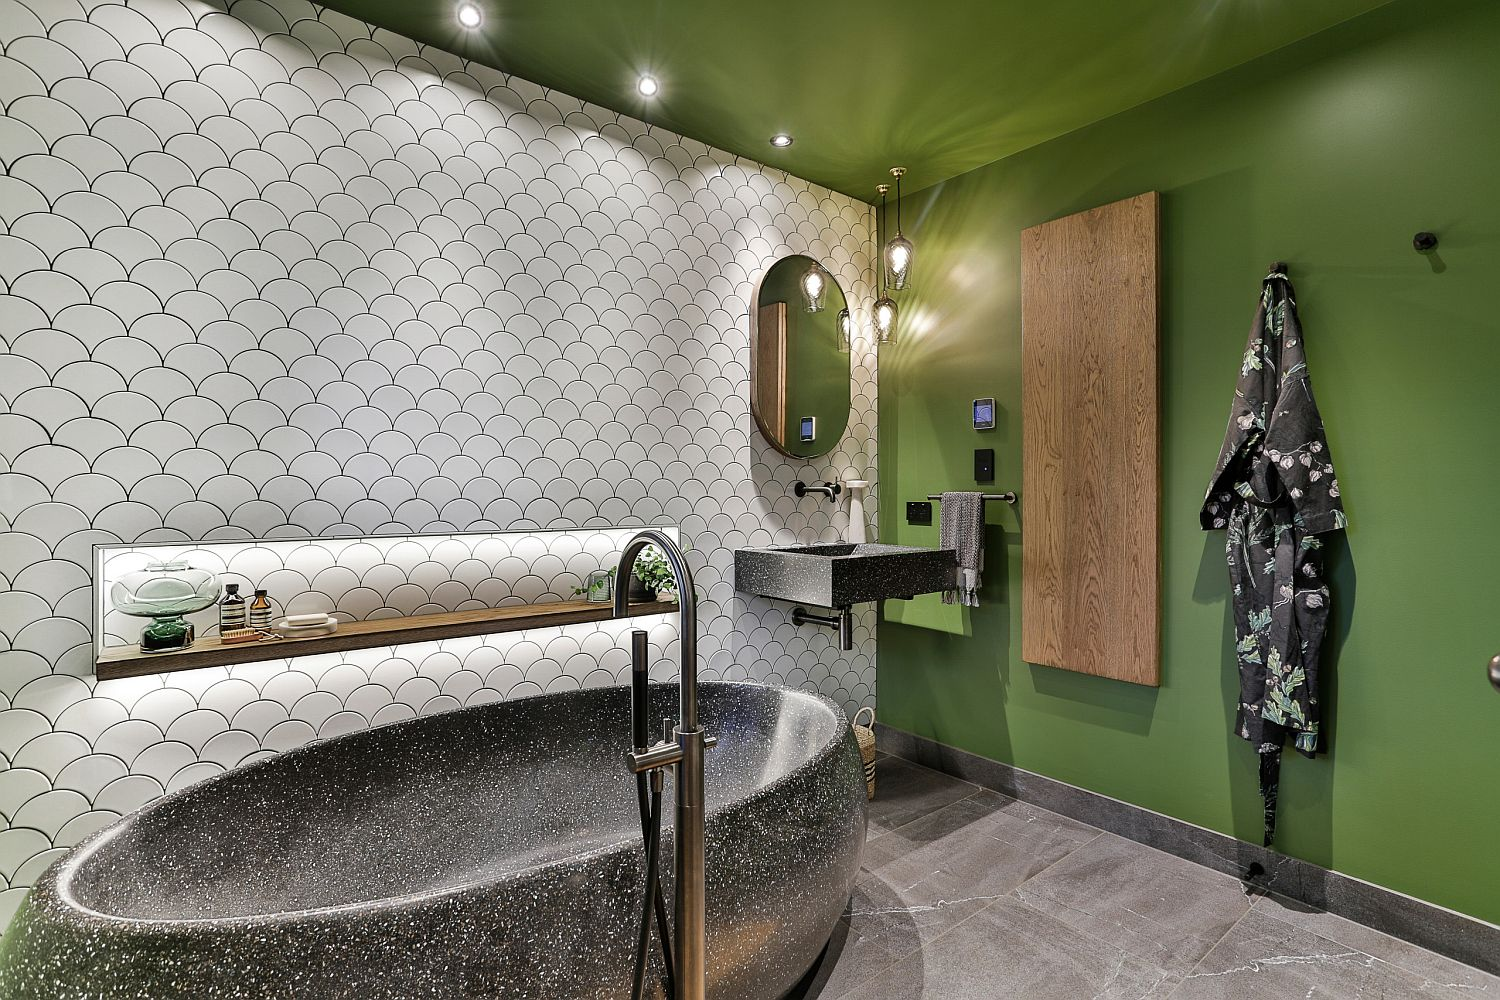 Fabulous-stone-bathtub-for-the-transitional-bathroom-in-green